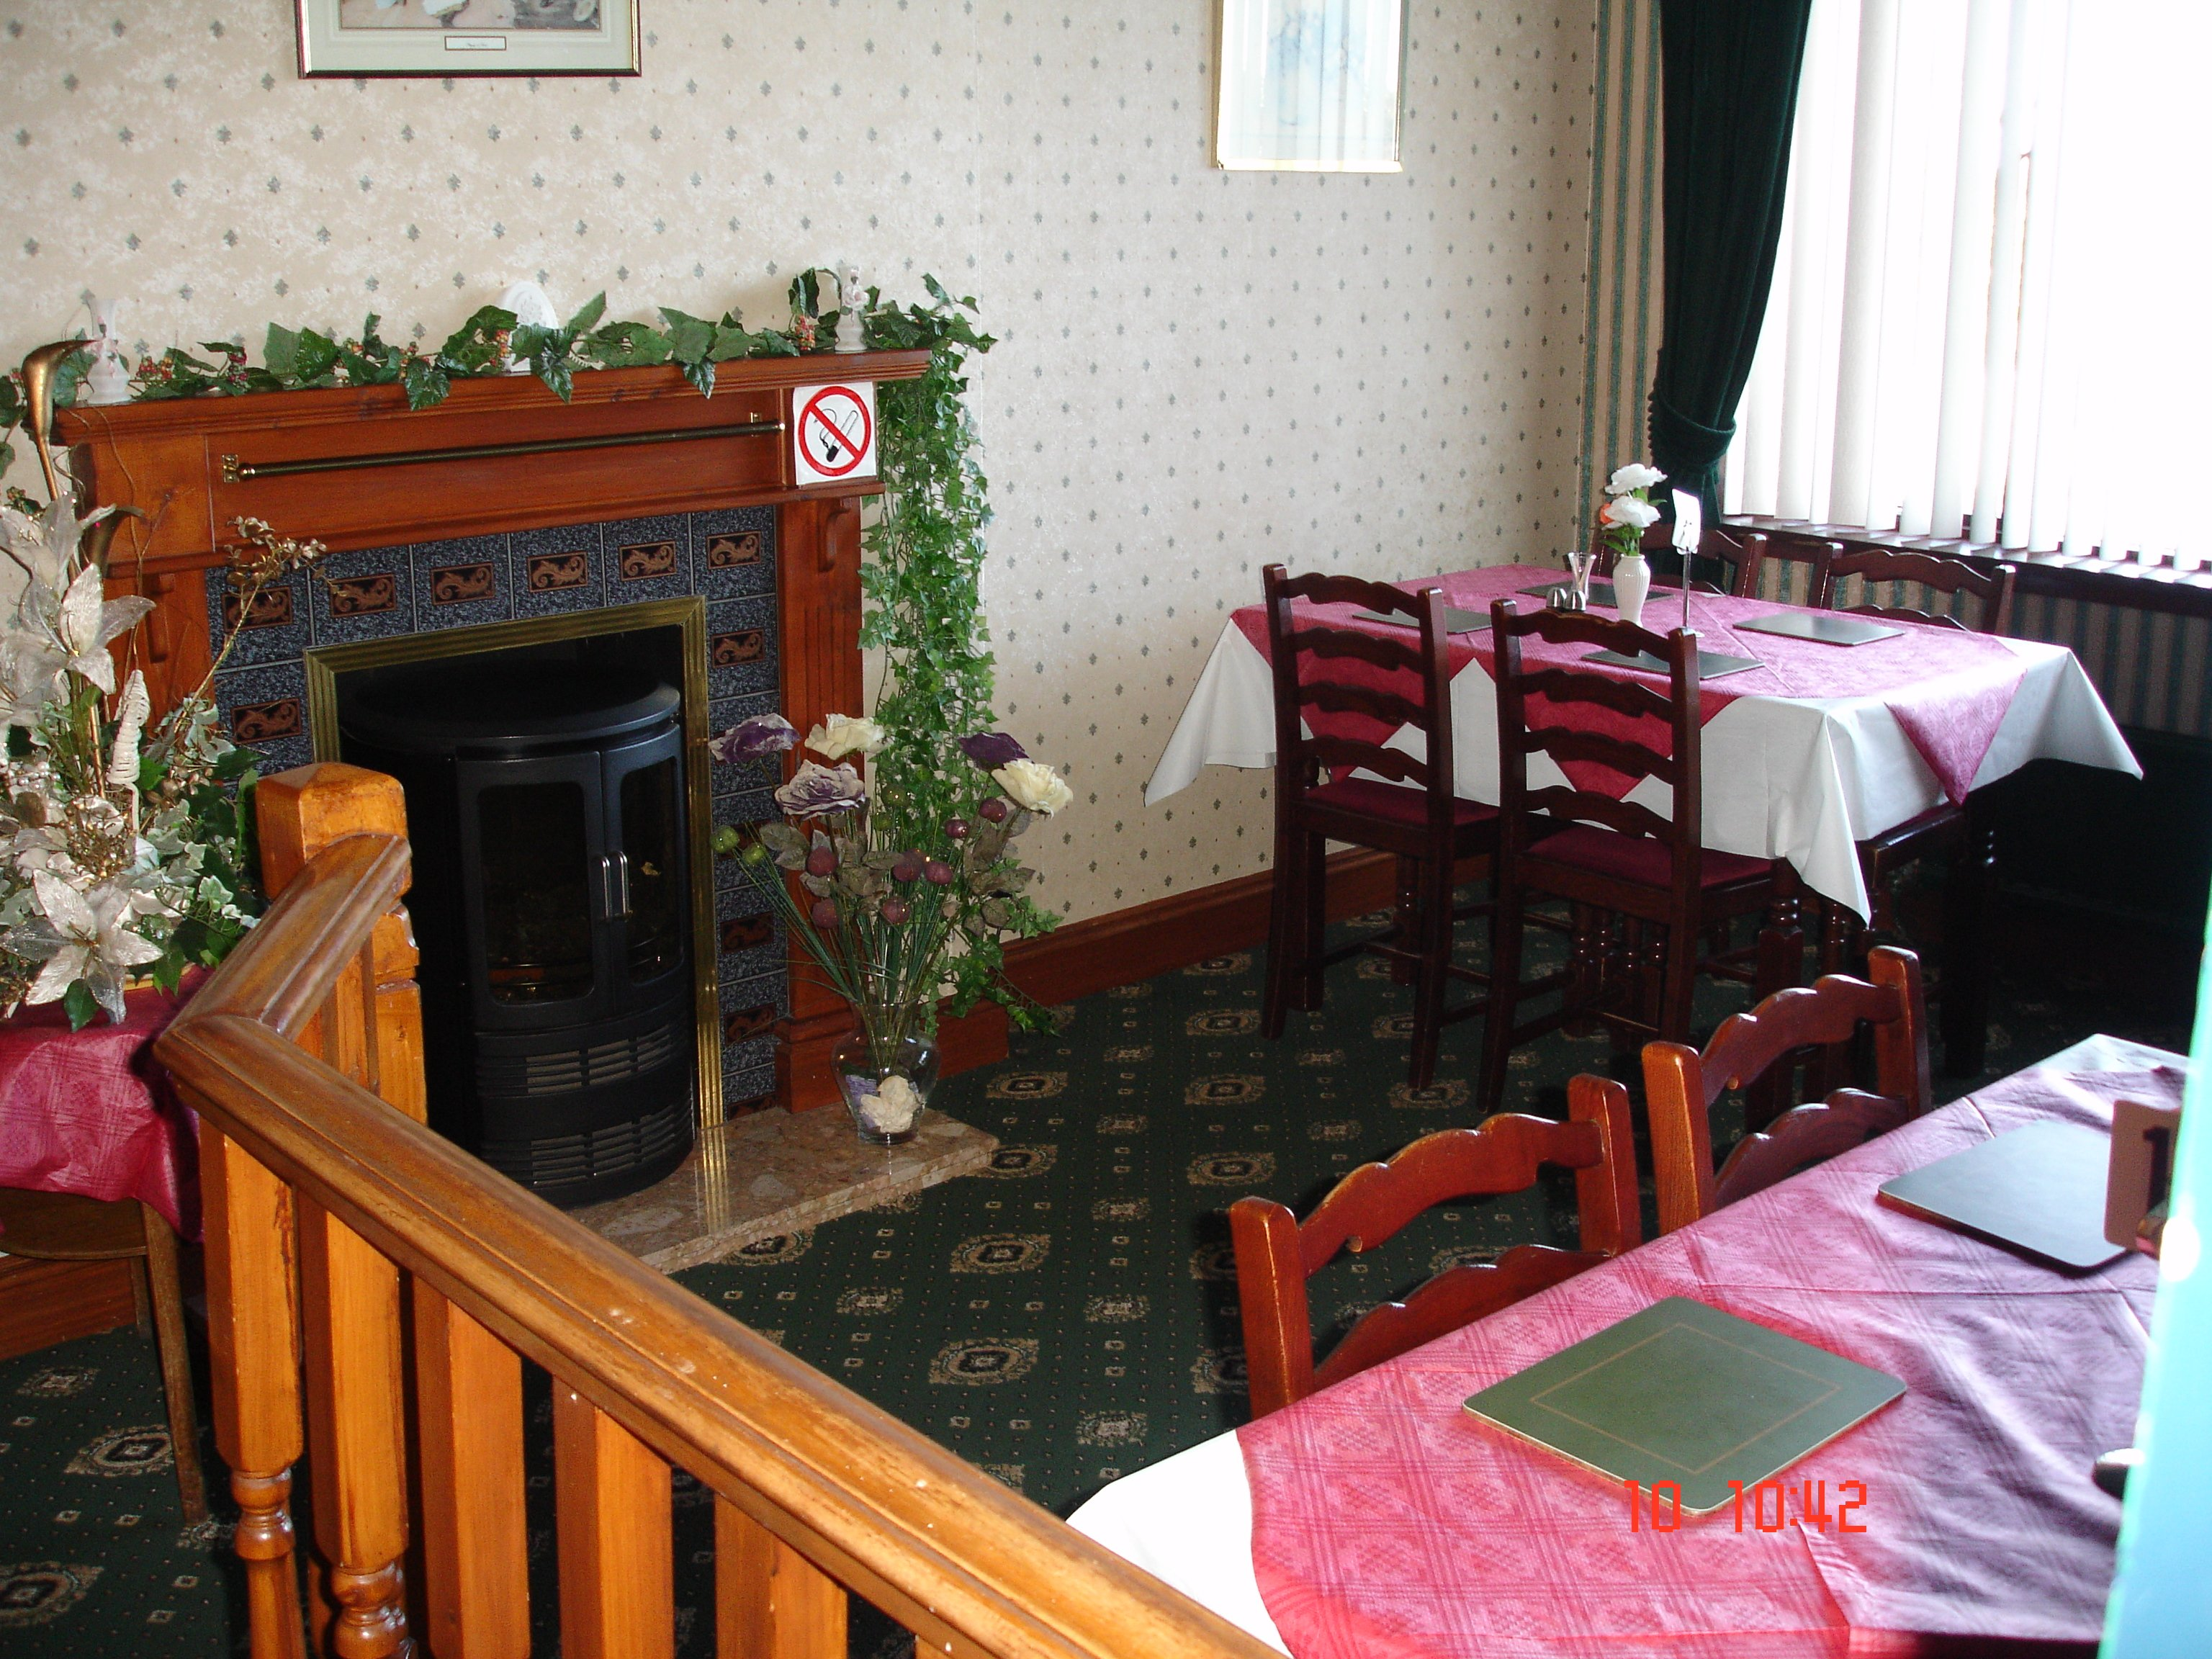 the dining room with multiple tables and chairs and a fireplace